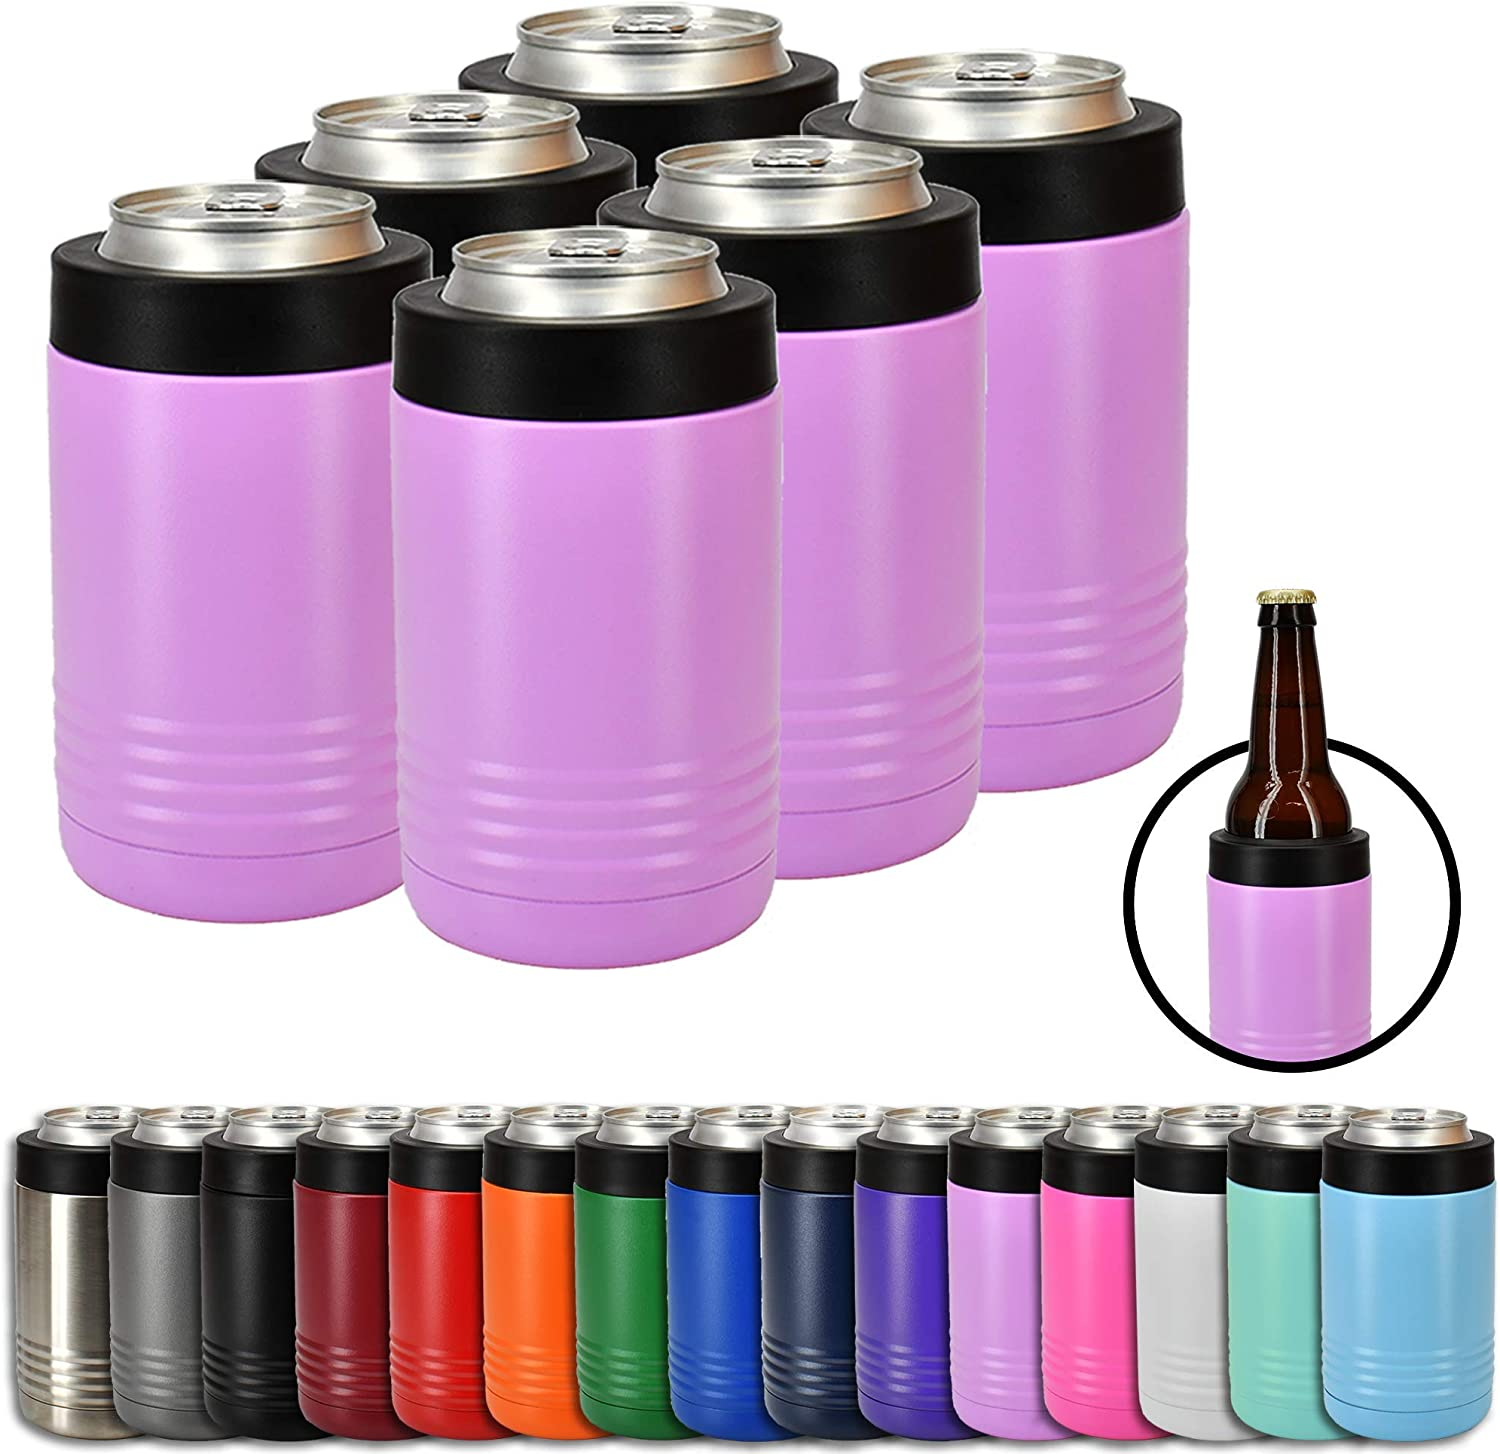 Clear Water Home Goods - 12 oz Stainless Steel Double Wall Vacuum Insulated Can or Bottle Cooler Keeps Beverage Cold for Hours - Powder Coated Light Purple - 6 Pack